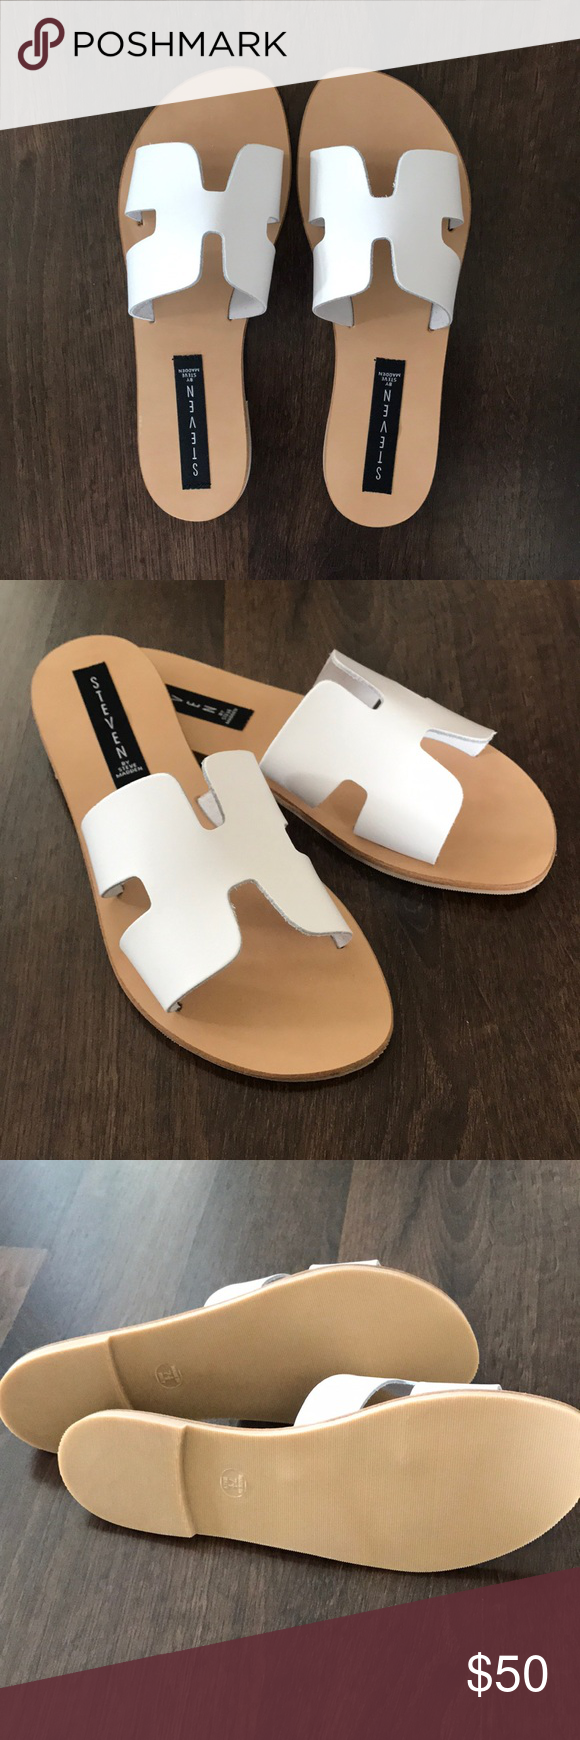 63c2a350034 Steven by Steve Madden Greece Sandals BNWT. Never been worn- perfect  condition! They run a little small